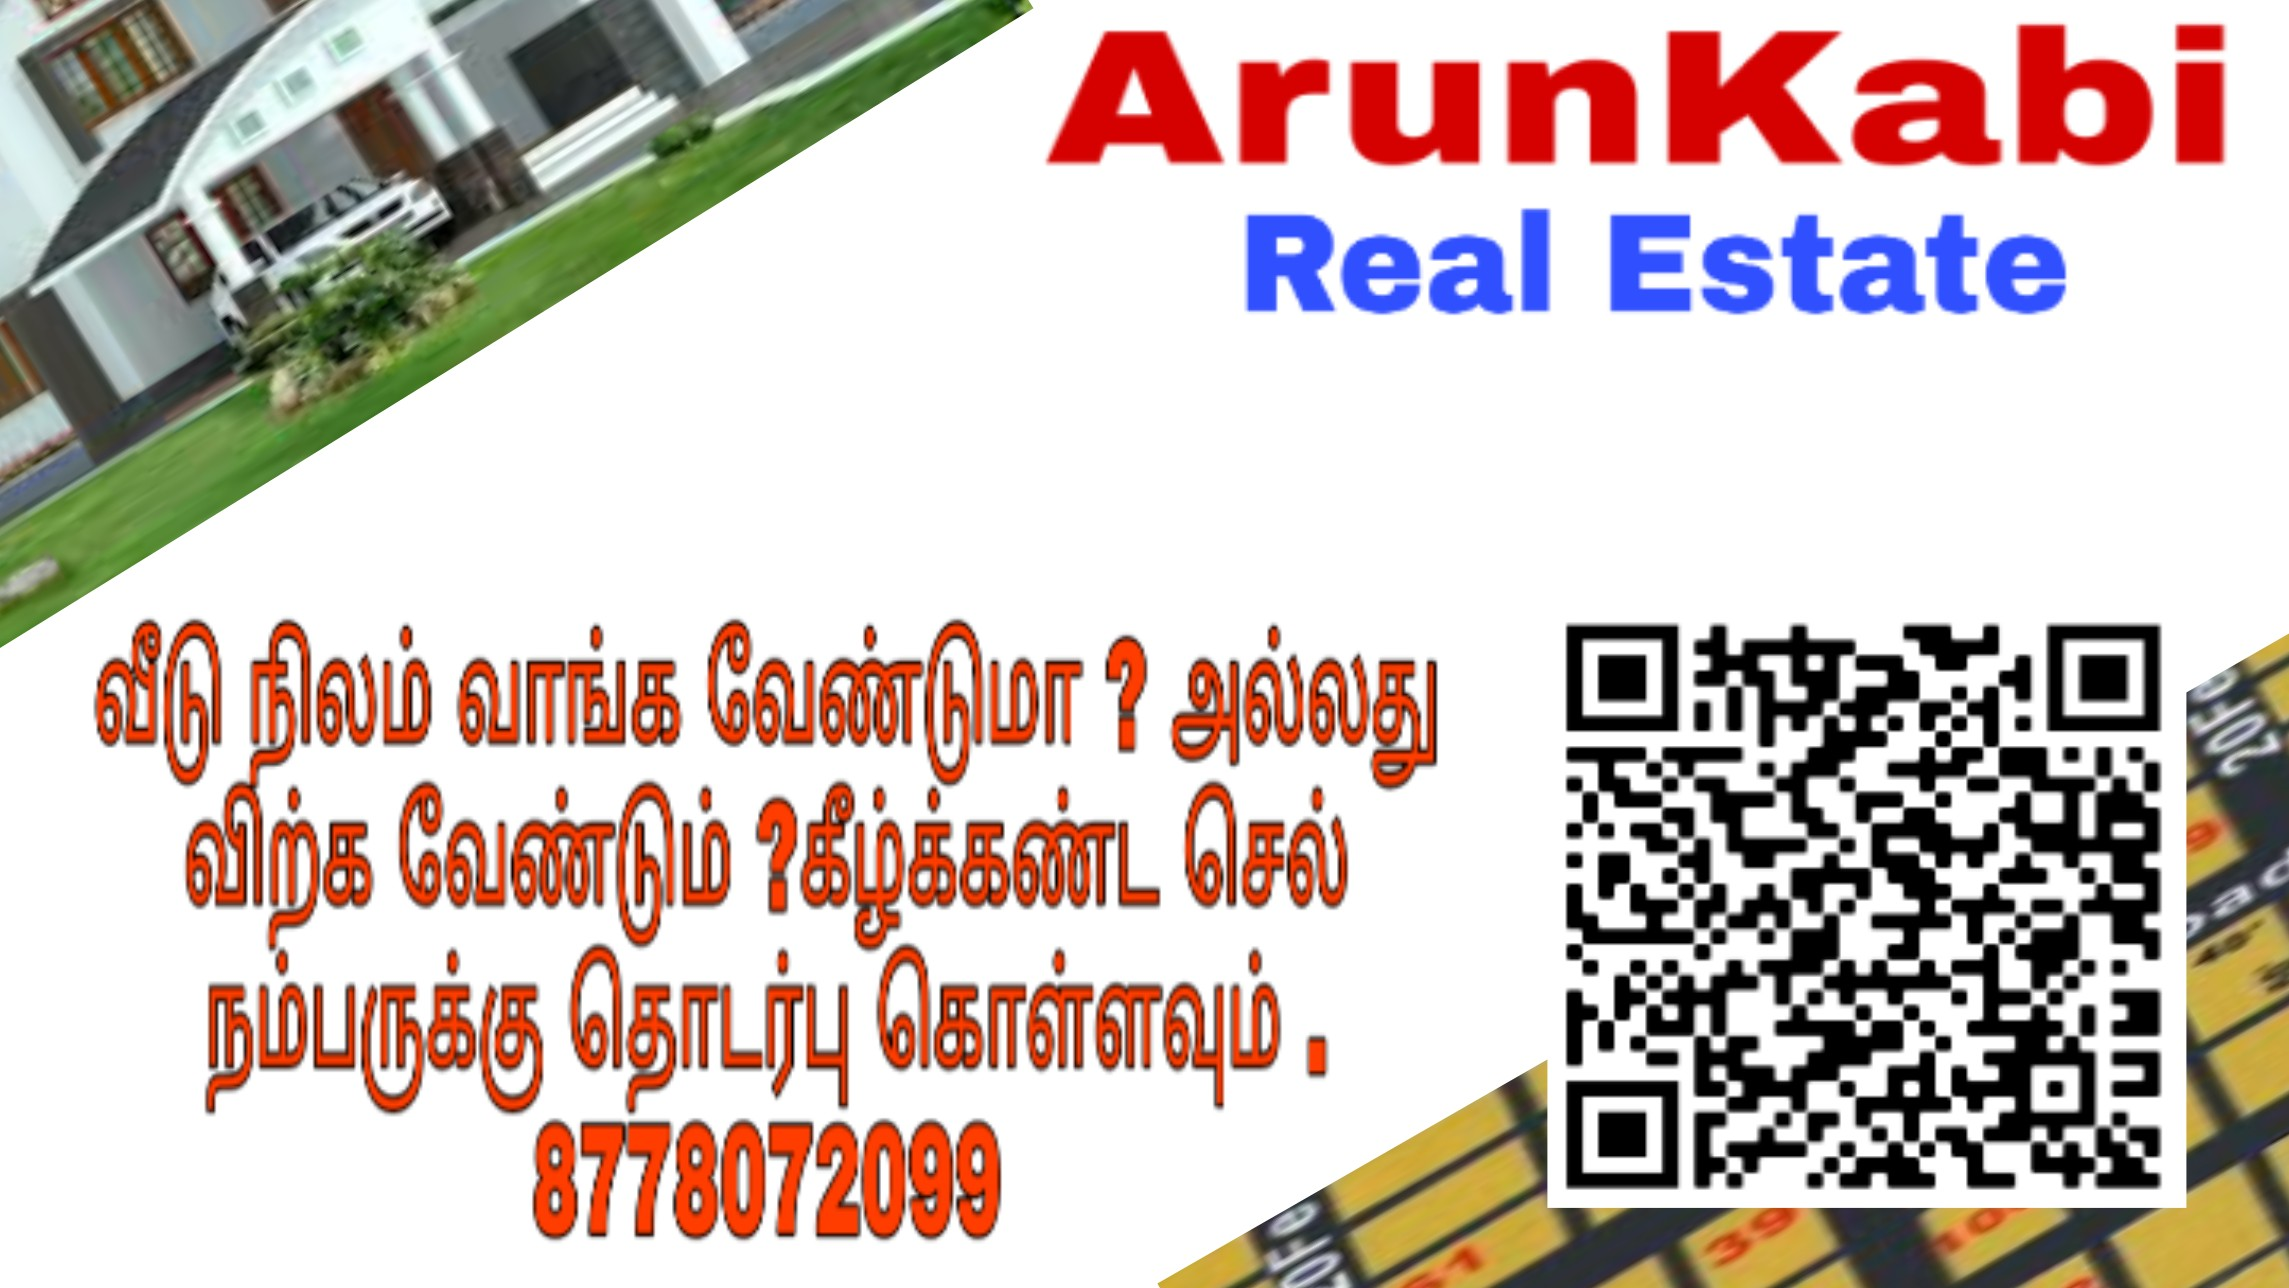 ArunKabi Real Estate